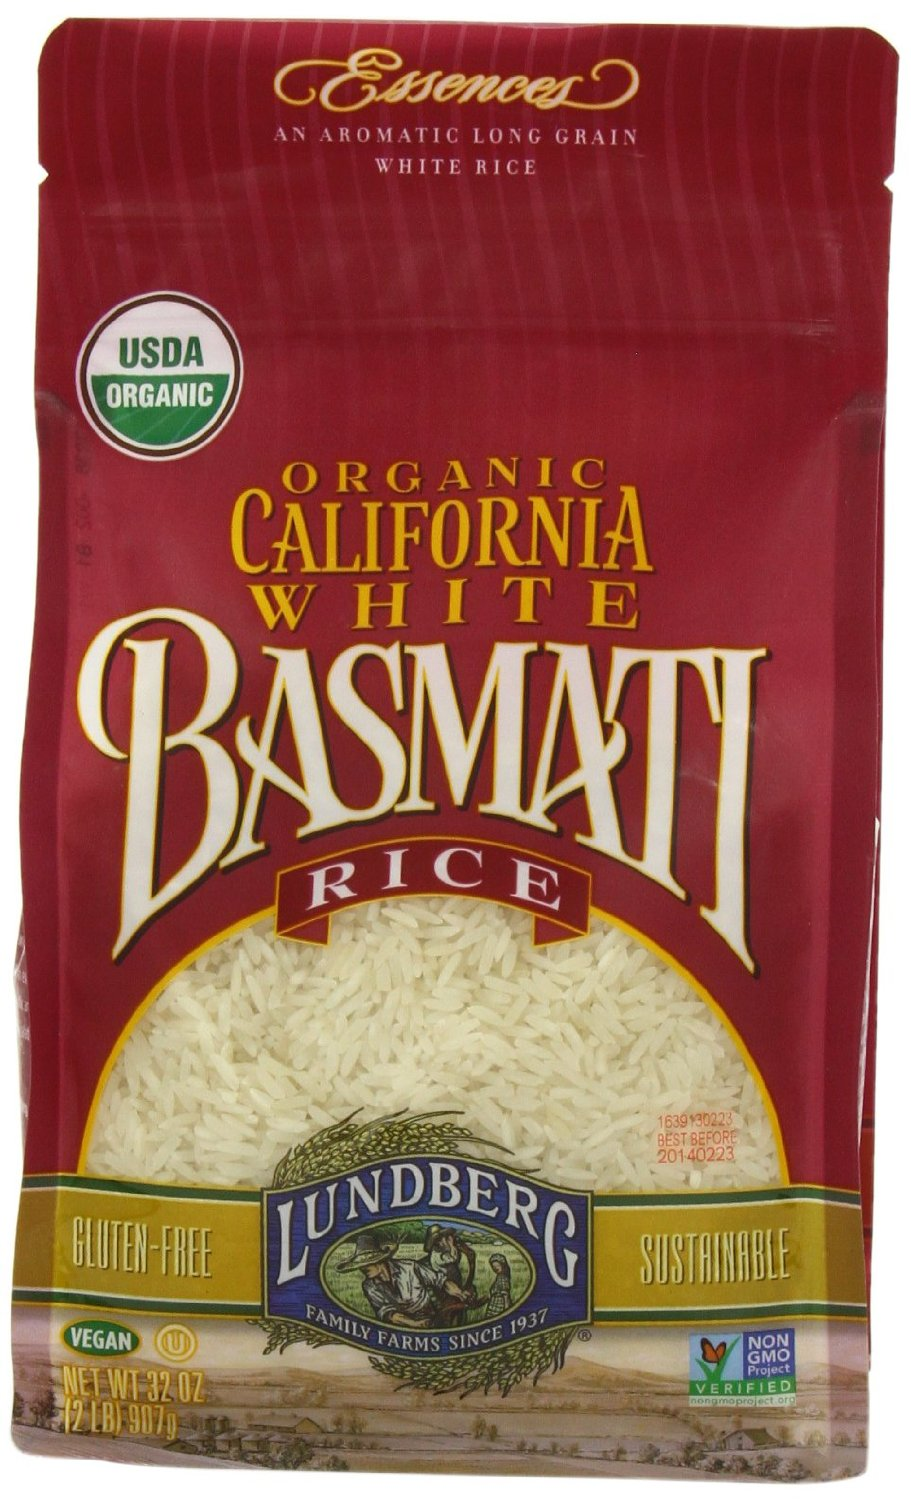 Lundberg California Basmati rice is the brand I exclusively buy for my family.  It has only 1.3 - 1.6 ppb arsenic per serving (1/4 cup uncooked), which is well below the safe limit.